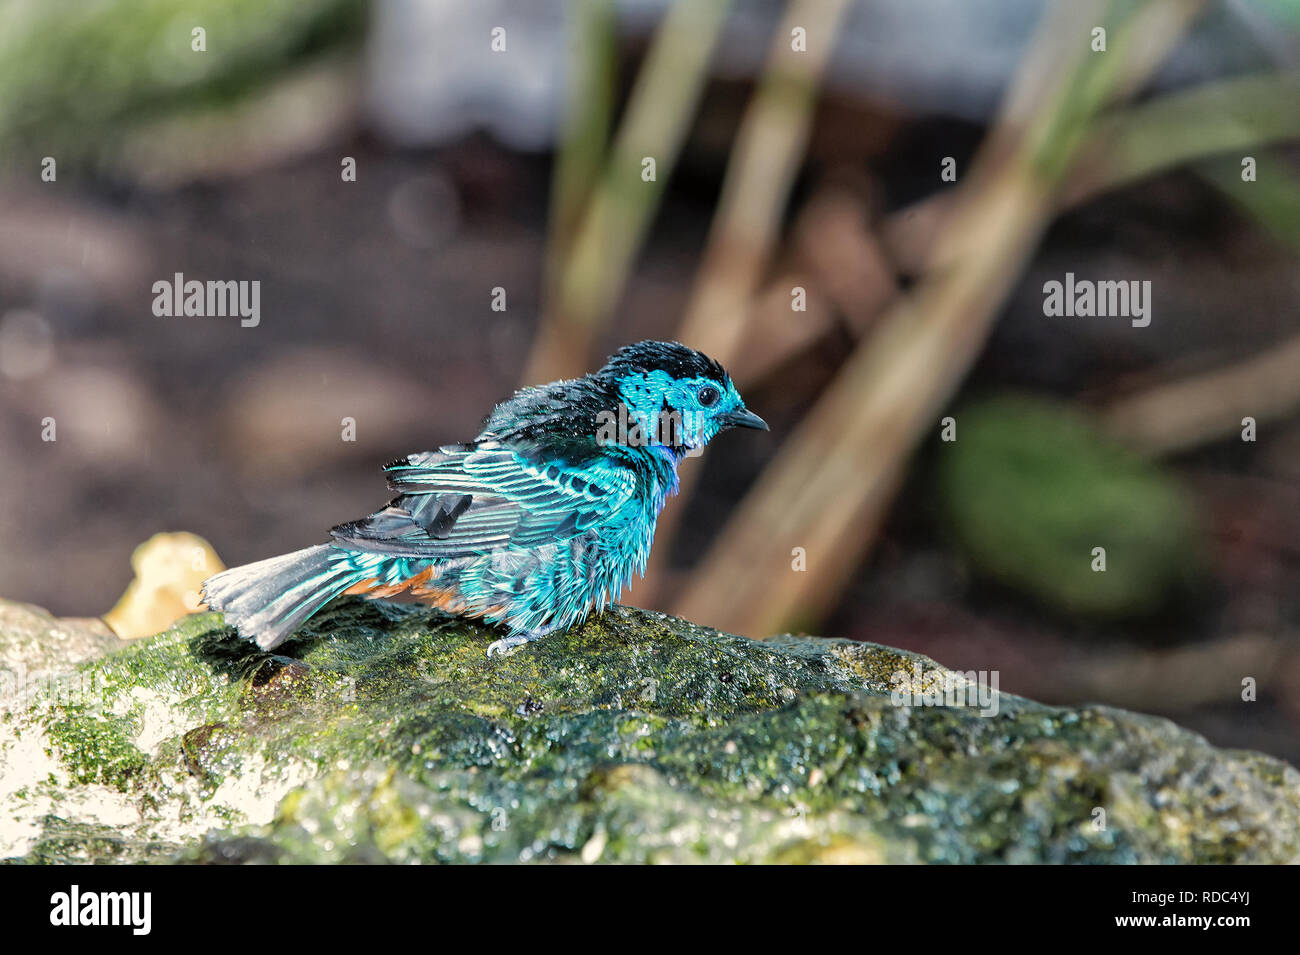 Beautiful Small Blue Bird With Water Drops On Feather Perching On Branch Sitting On Stone On Natural Background Stock Photo Alamy